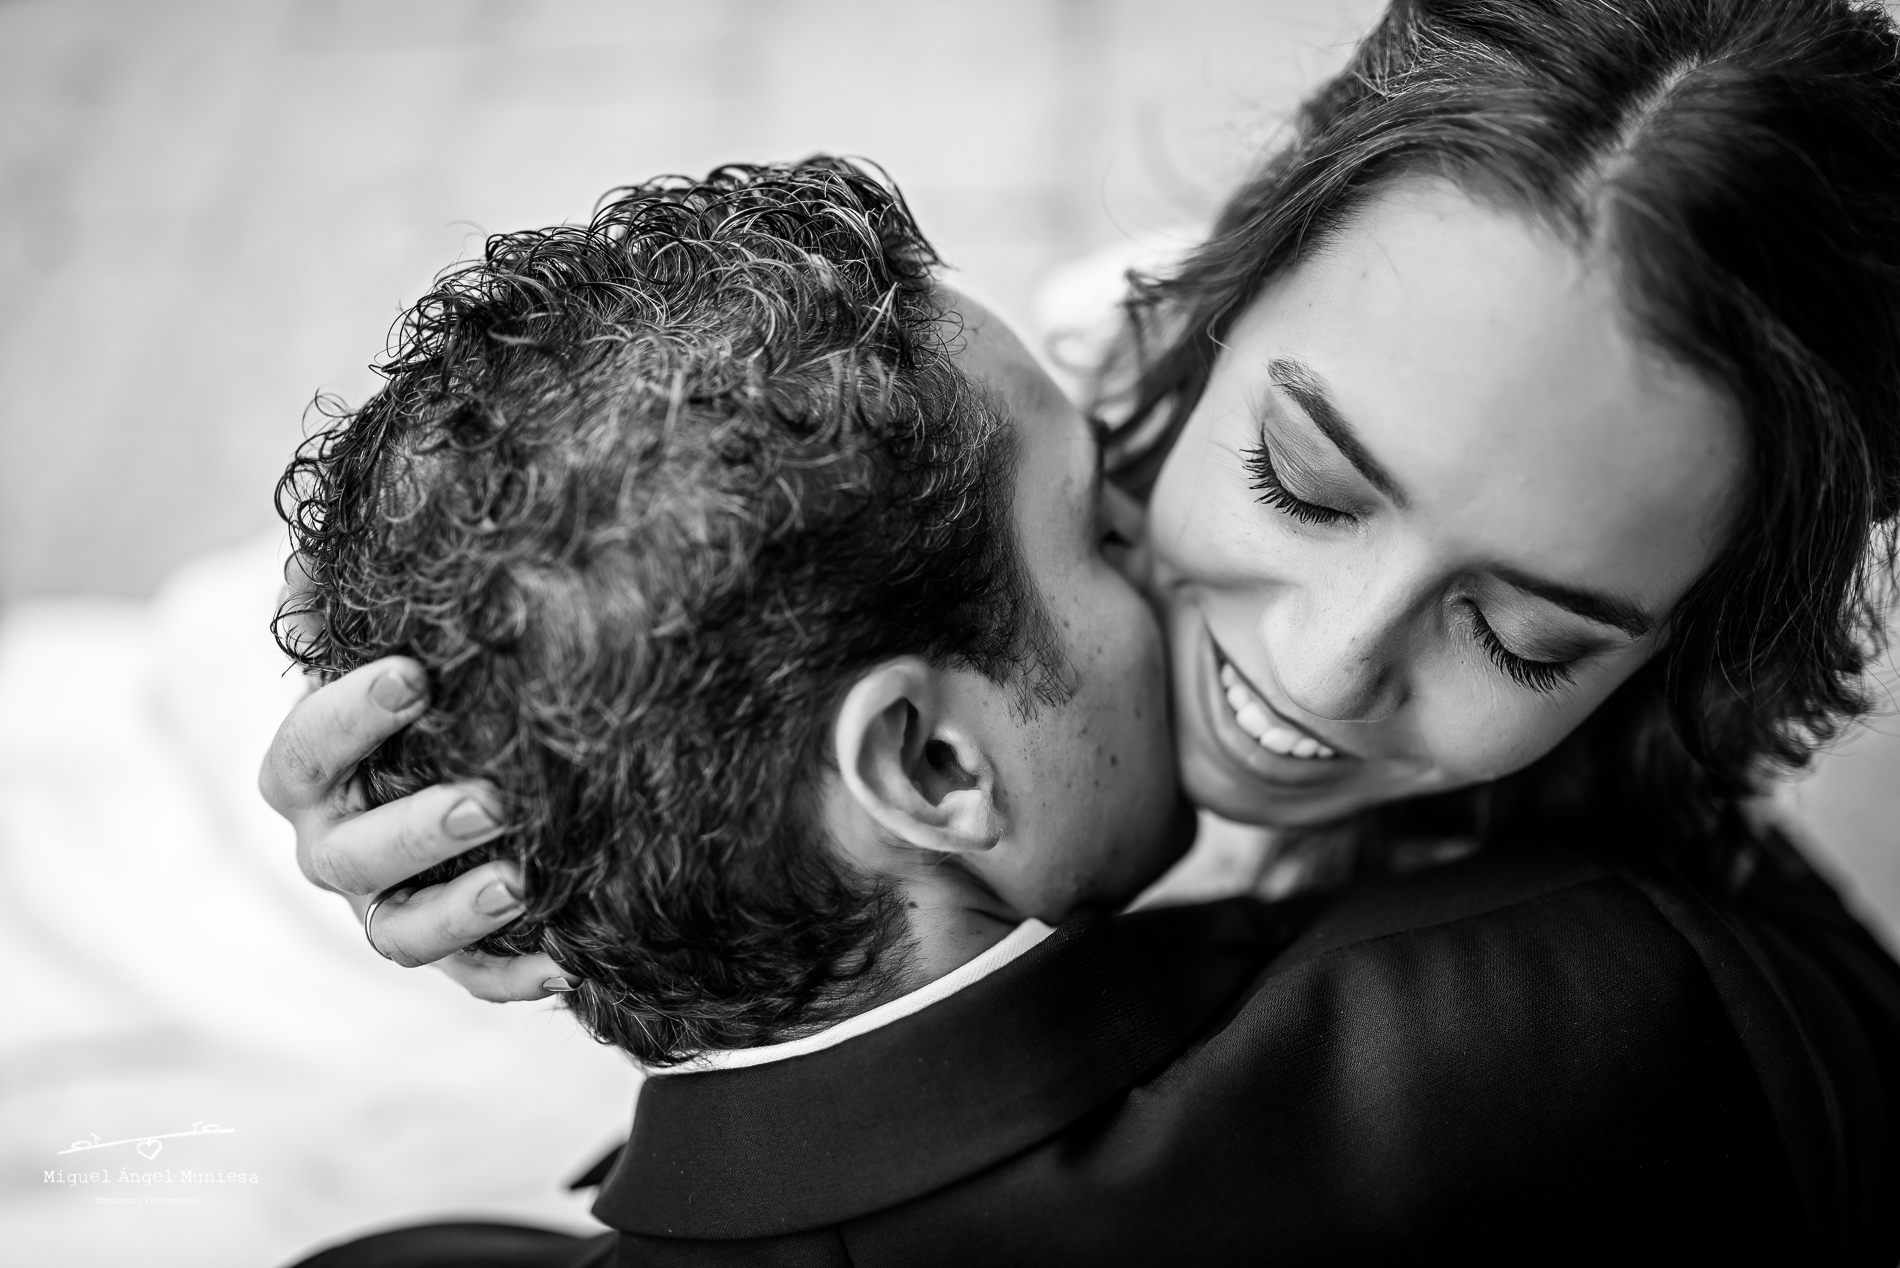 miguel angel muniesa, boda, fotografo de boda, boda zaragoza, wedding photographer, miguel angel muniesa emotional photography, destination wedding_02